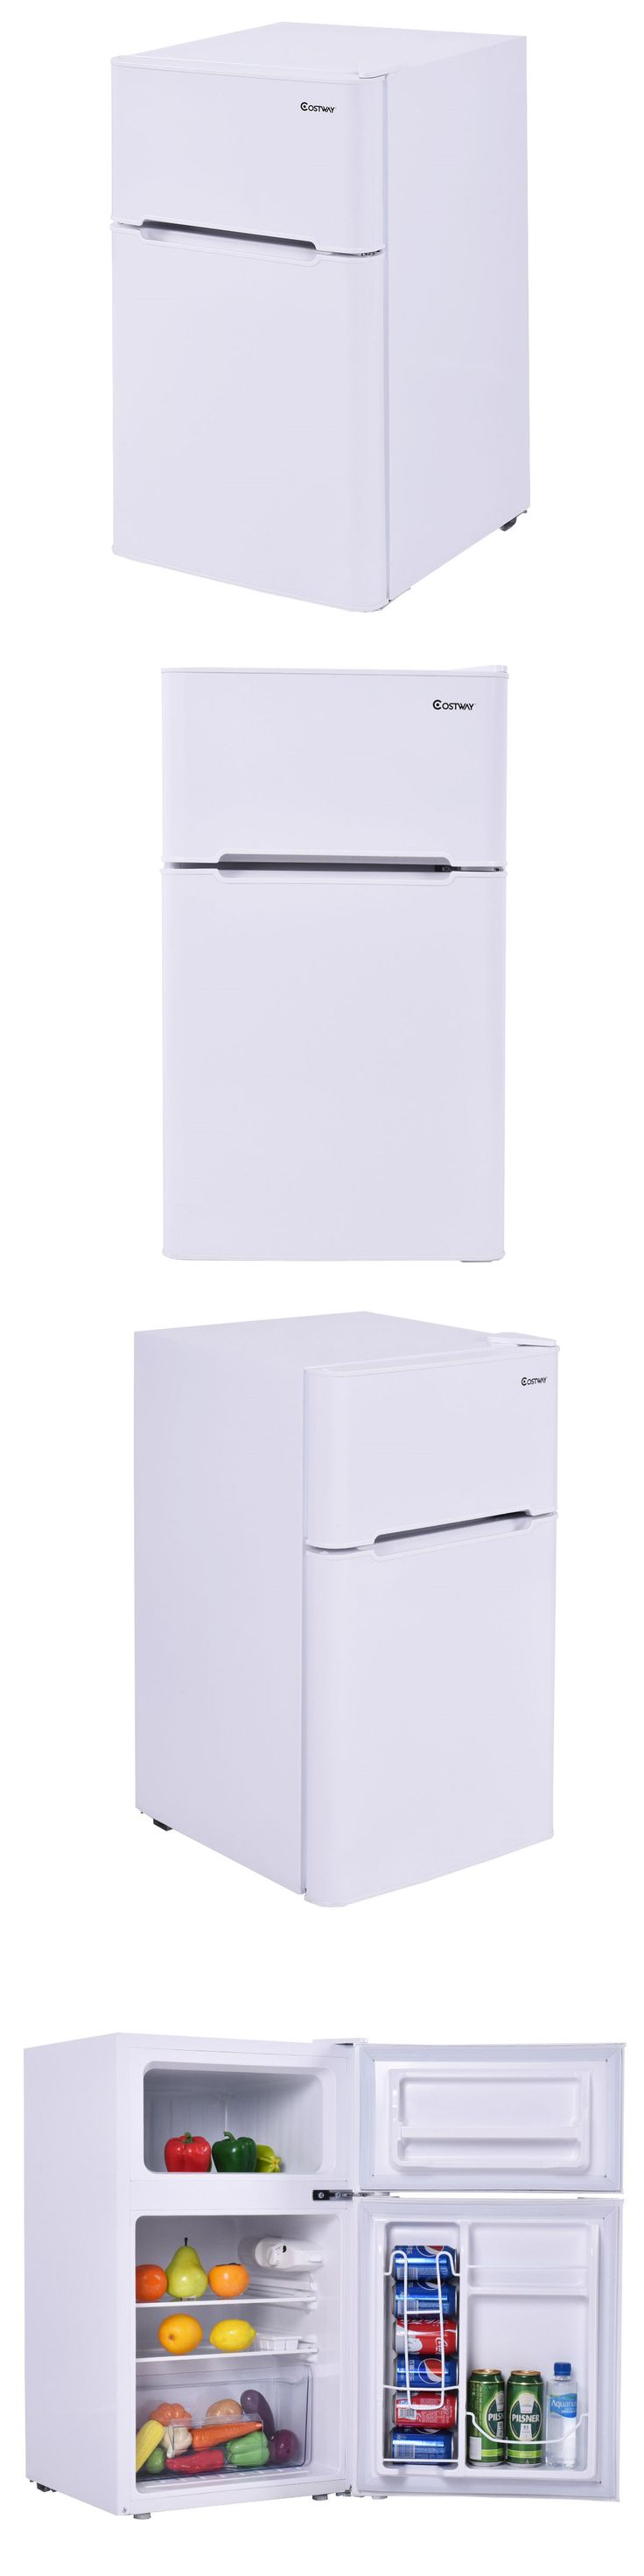 Refrigerators 20713: Stainless Steel Refrigerator Small Freezer Cooler Fridge Compact 3.2 Cu Ft. Unit -> BUY IT NOW ONLY: $155.95 on eBay!